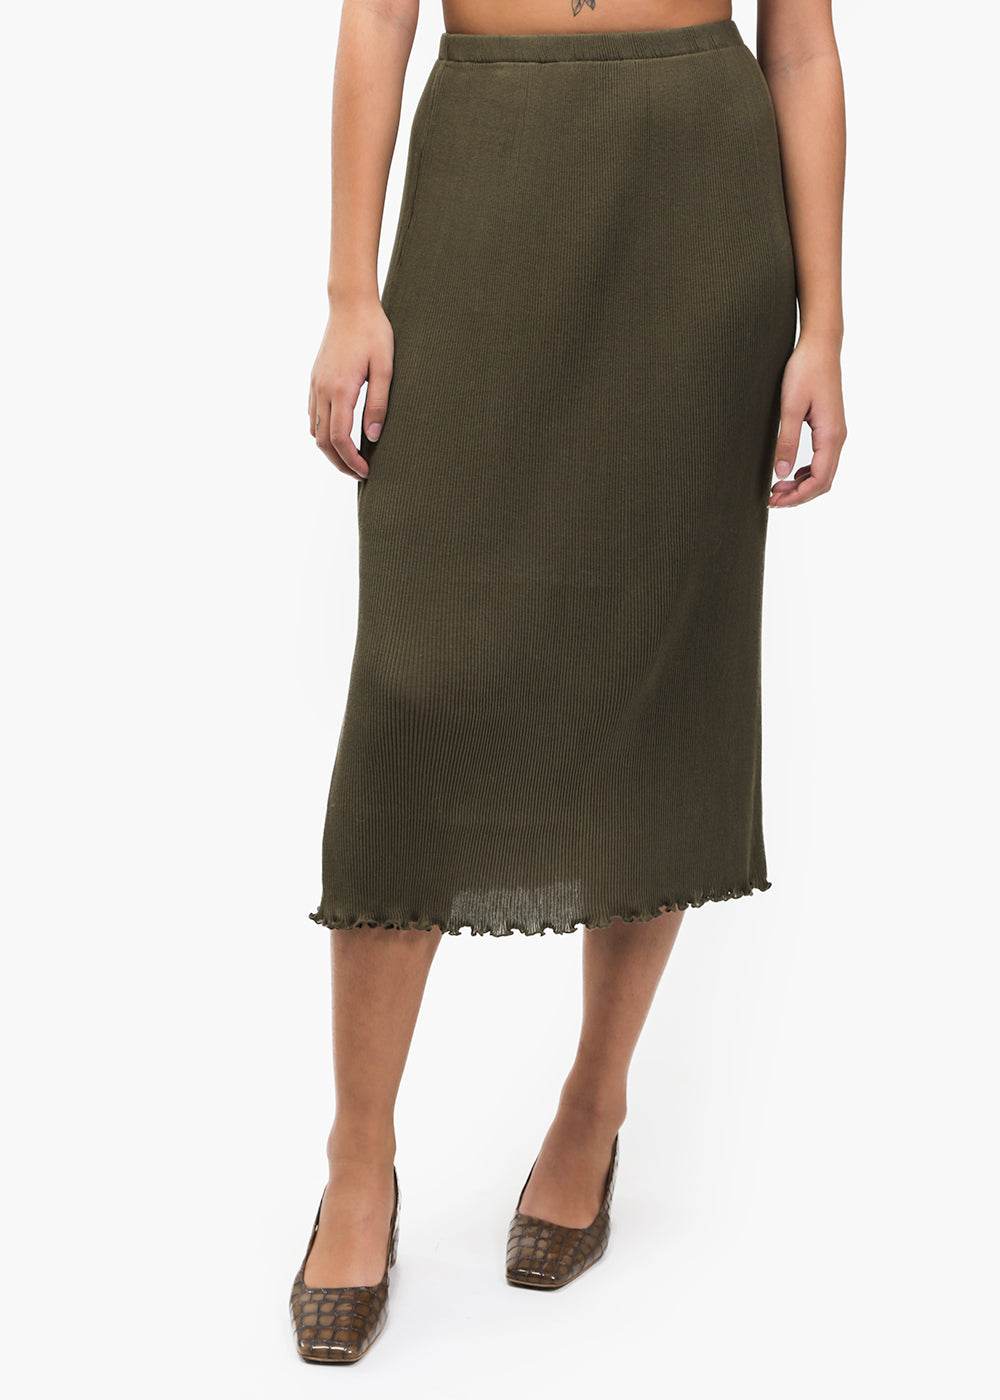 Lauren Manoogian Olive Accordion Skirt — Shop sustainable fashion and slow fashion at New Classics Studios